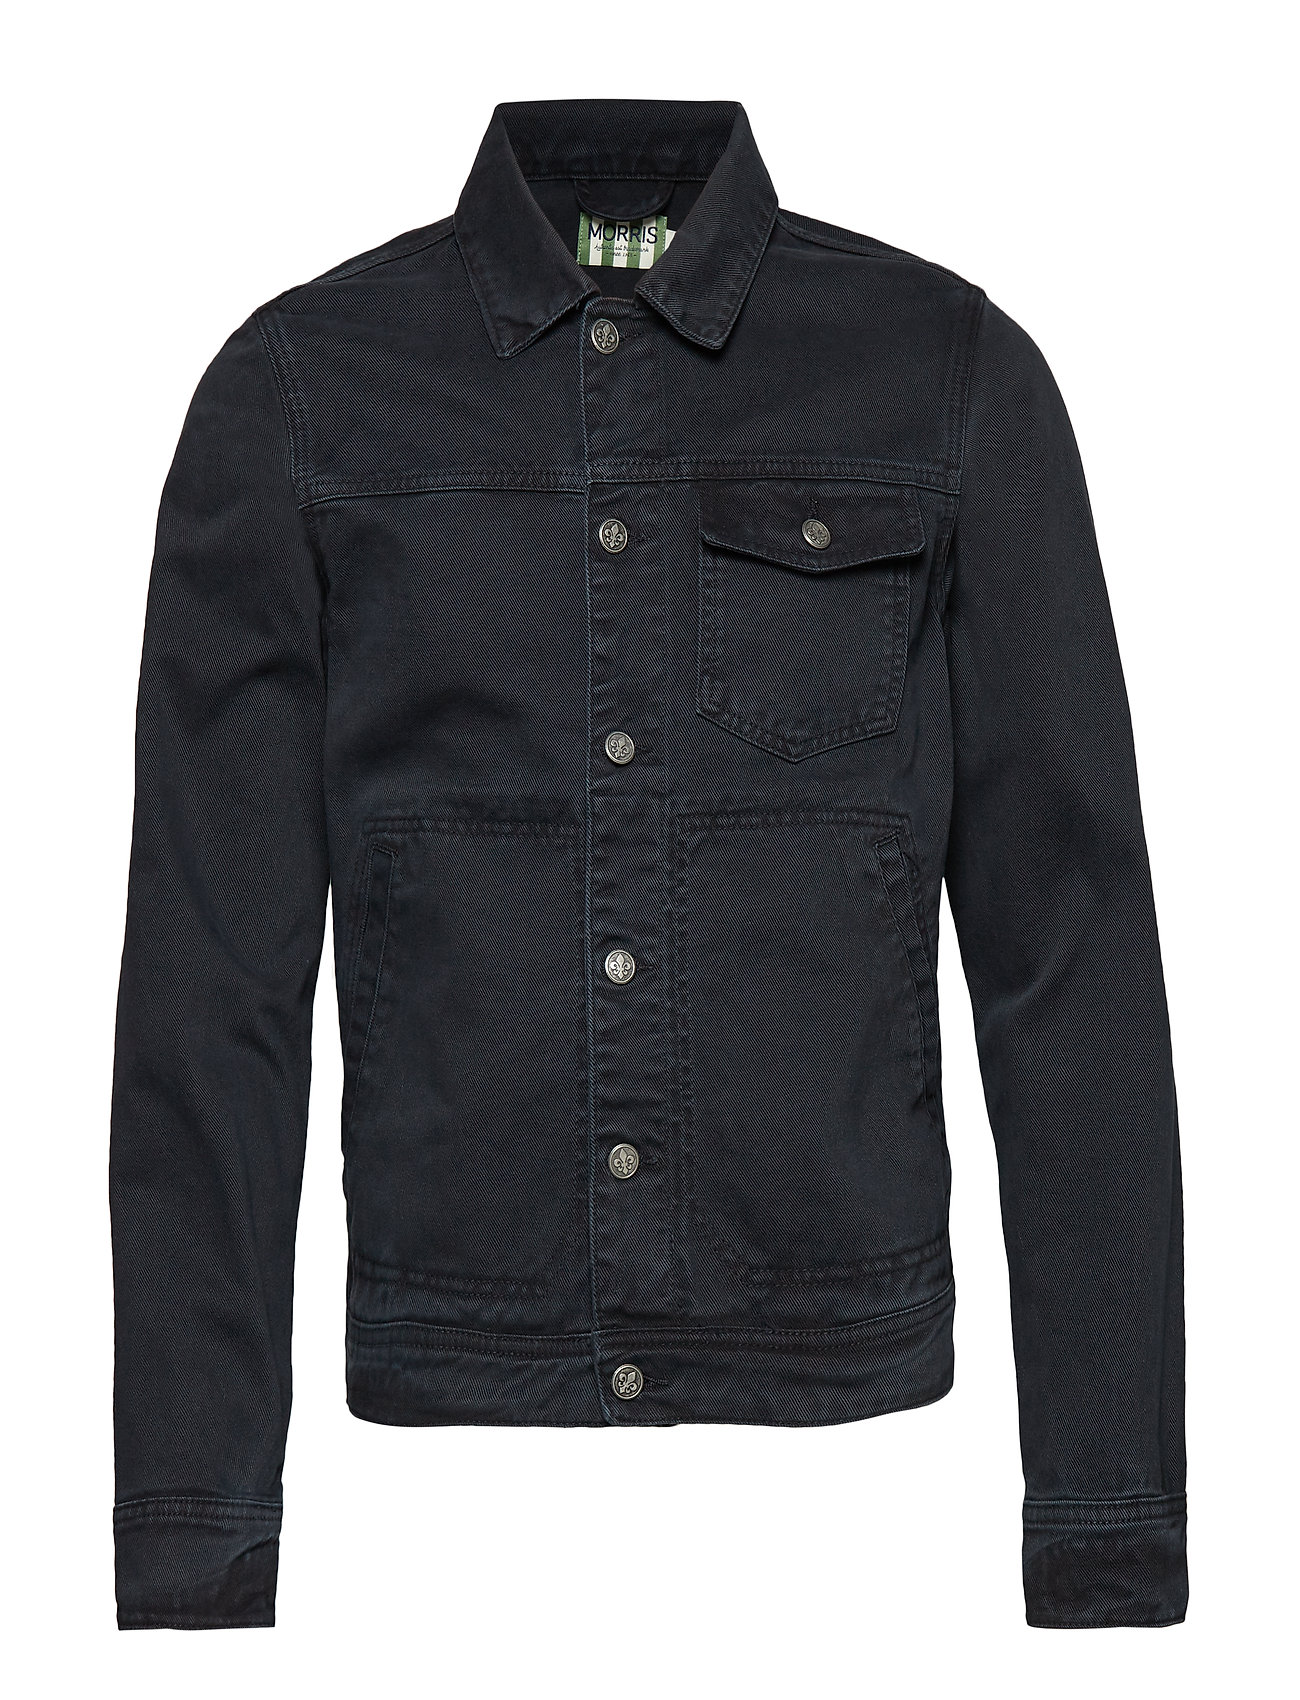 Morris Franklin Twill Jacket - NAVY